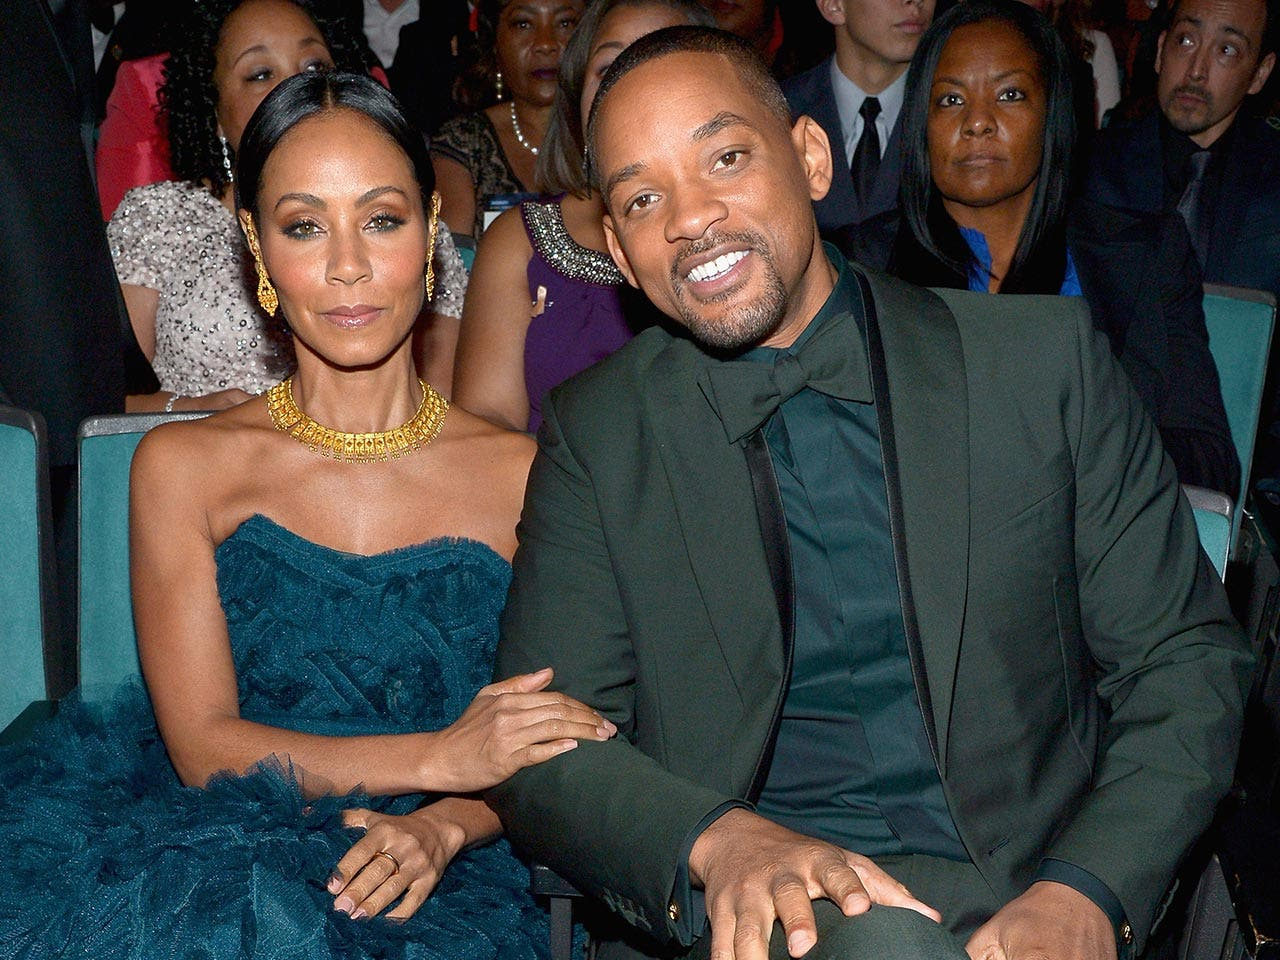 Jada Pinkett Smith and Will Smith | Charley Gallay/Getty Images